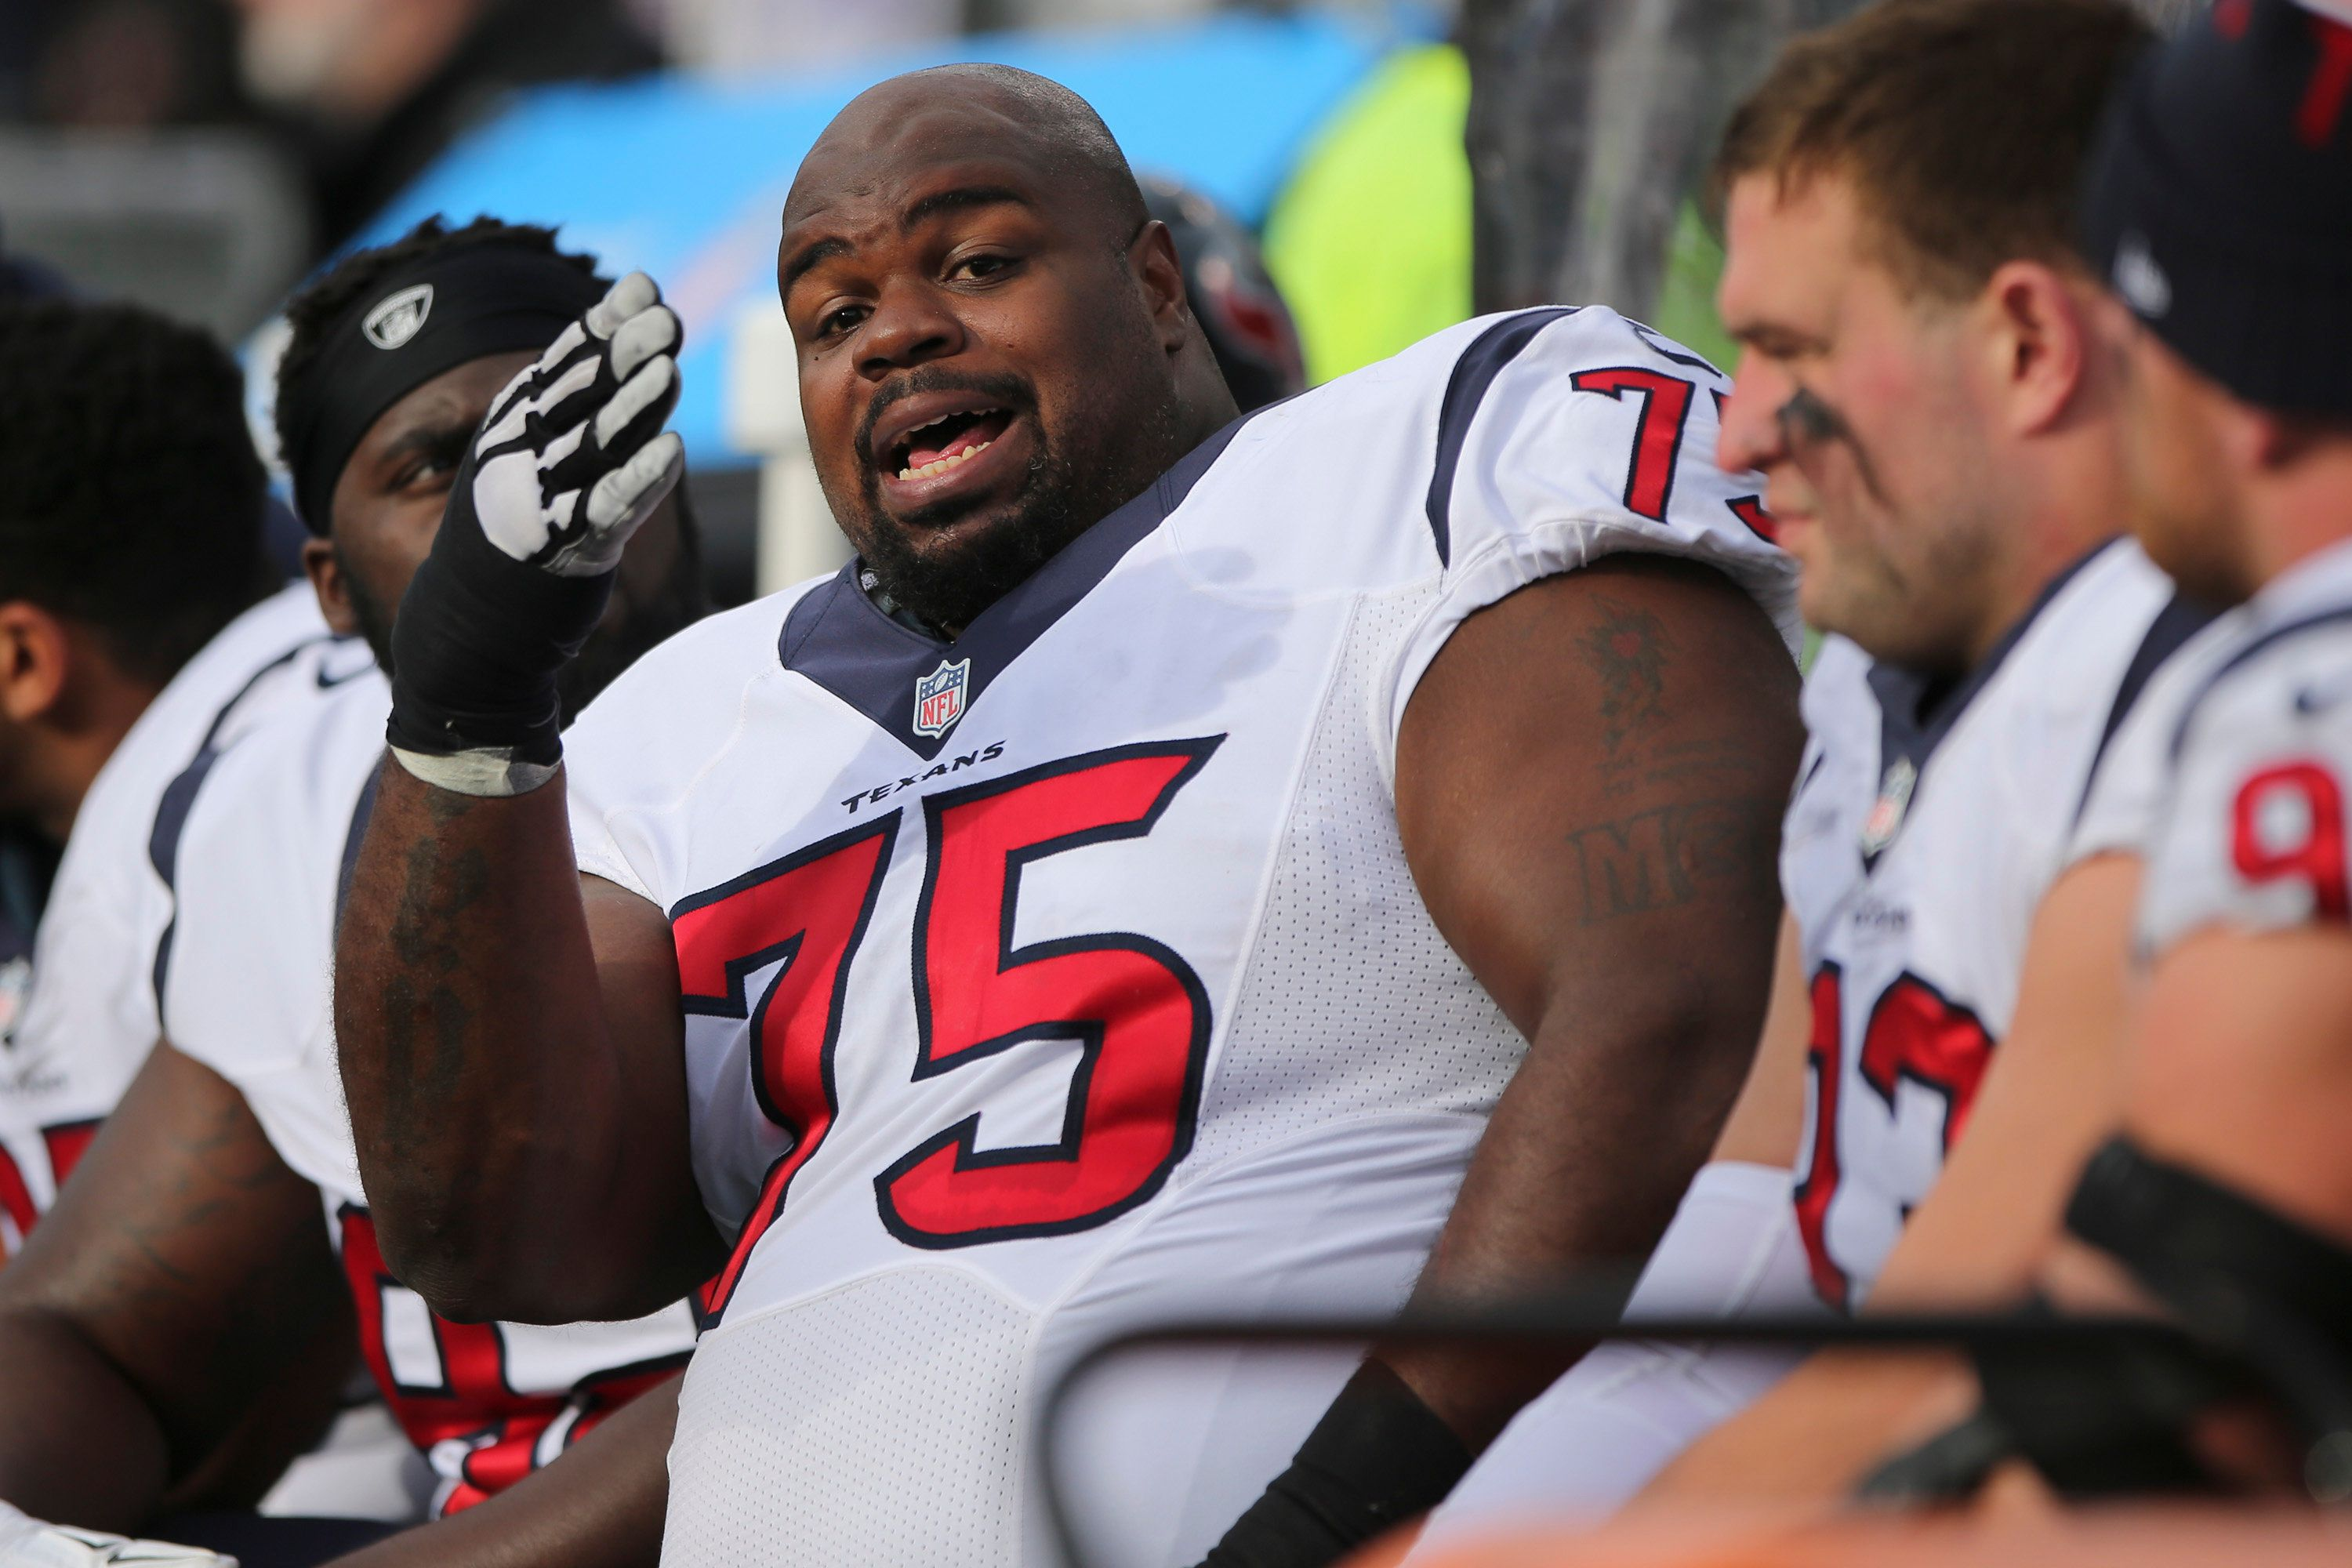 ORCHARD PARK, NY - DECEMBER 06: Vince Wilfork #75 of the Houston Texans talks to his teammates during the first half against the Buffalo Bills at Ralph Wilson Stadium on December 06, 2015 in Orchard Park, New York. (Photo by Jerome Davis/Getty Images)